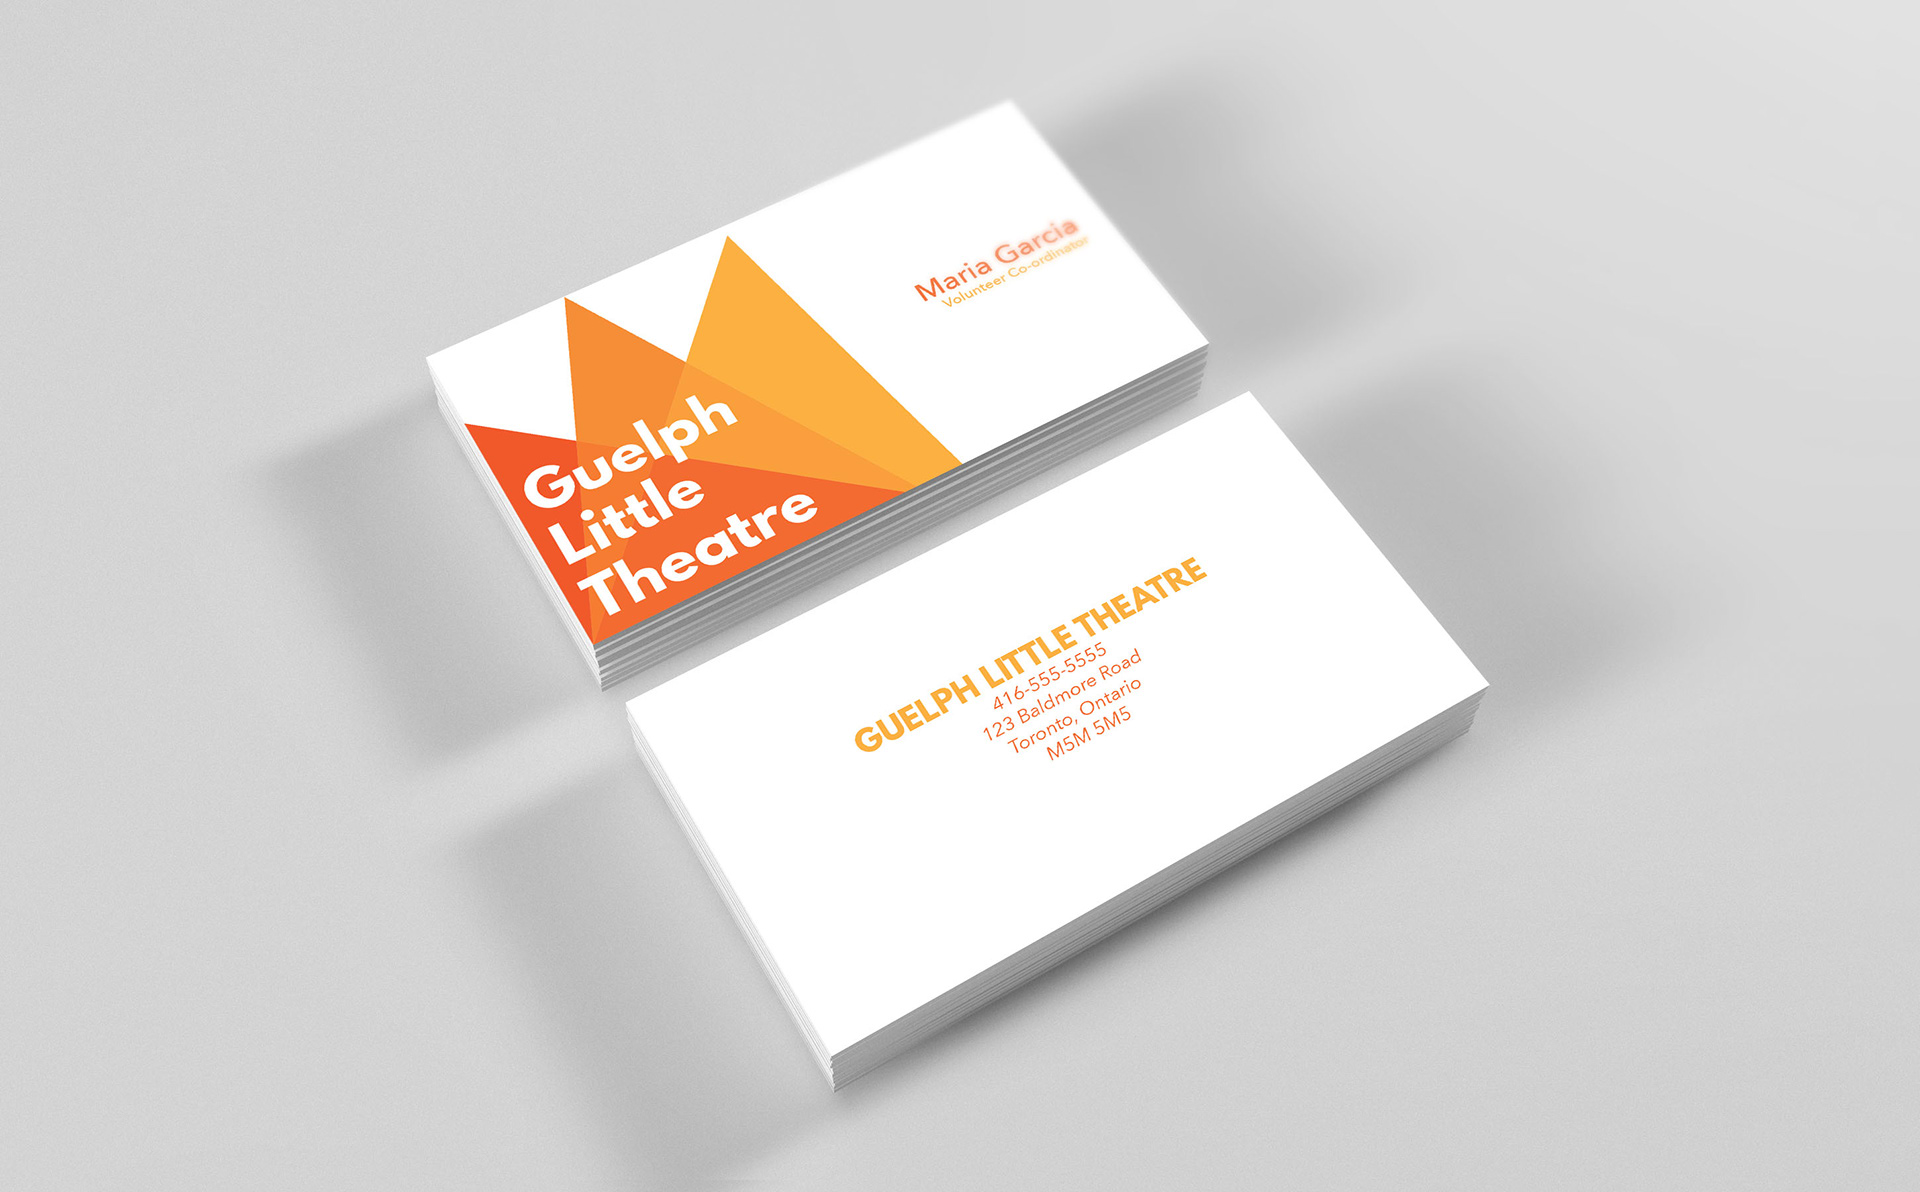 Ann mcdougall guelph little theatre branding branding project for a community theatre group this logo was inspired by the bold interplay of colours in theatrical lighting reheart Choice Image